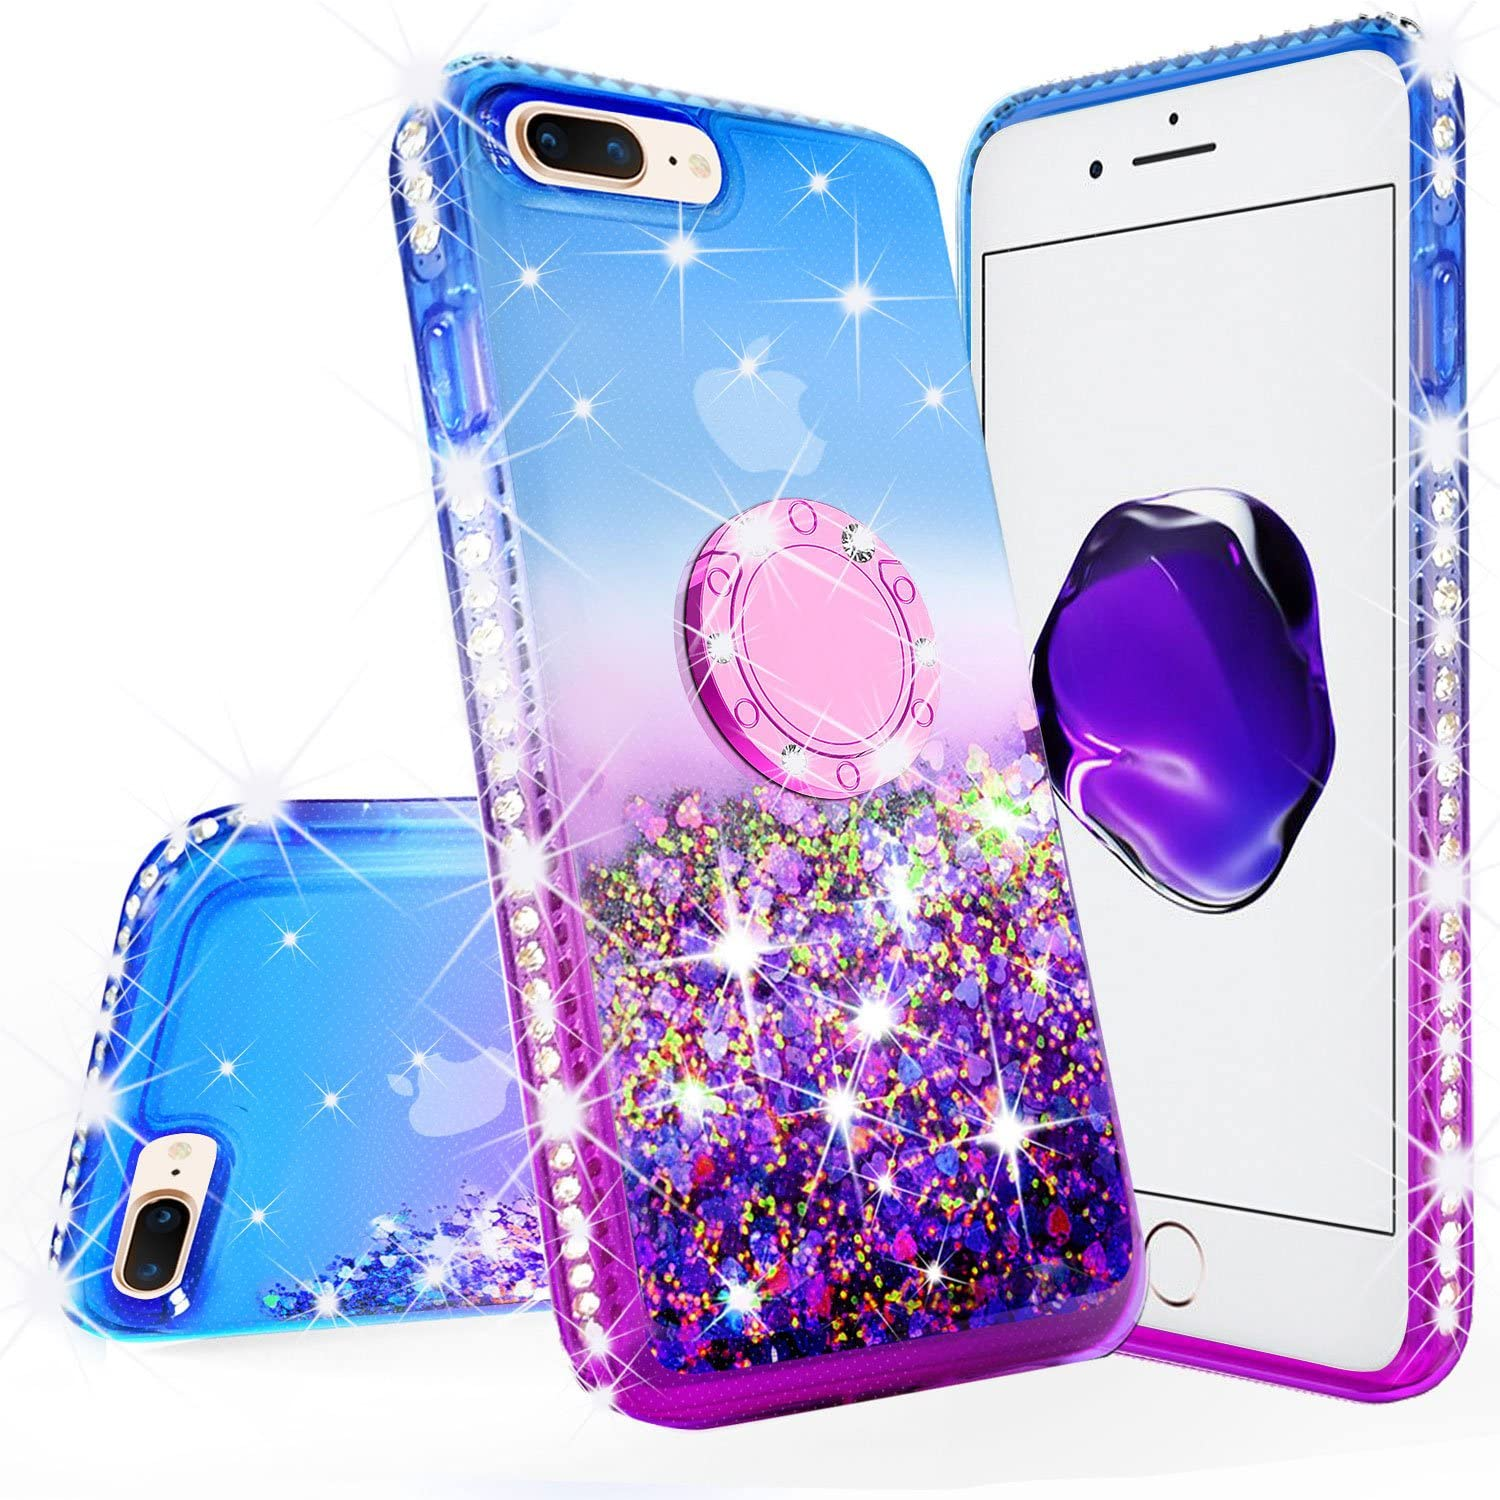 Galaxy Wireless New iPod Touch Case,iPod Touch 5th/6th/7th Generation Case Liquid Glitter Quicksand Bling Sparkle Diamond Ring Stand Cases Compatible for Apple iPod Touch 5/6/7,Purple/Blue